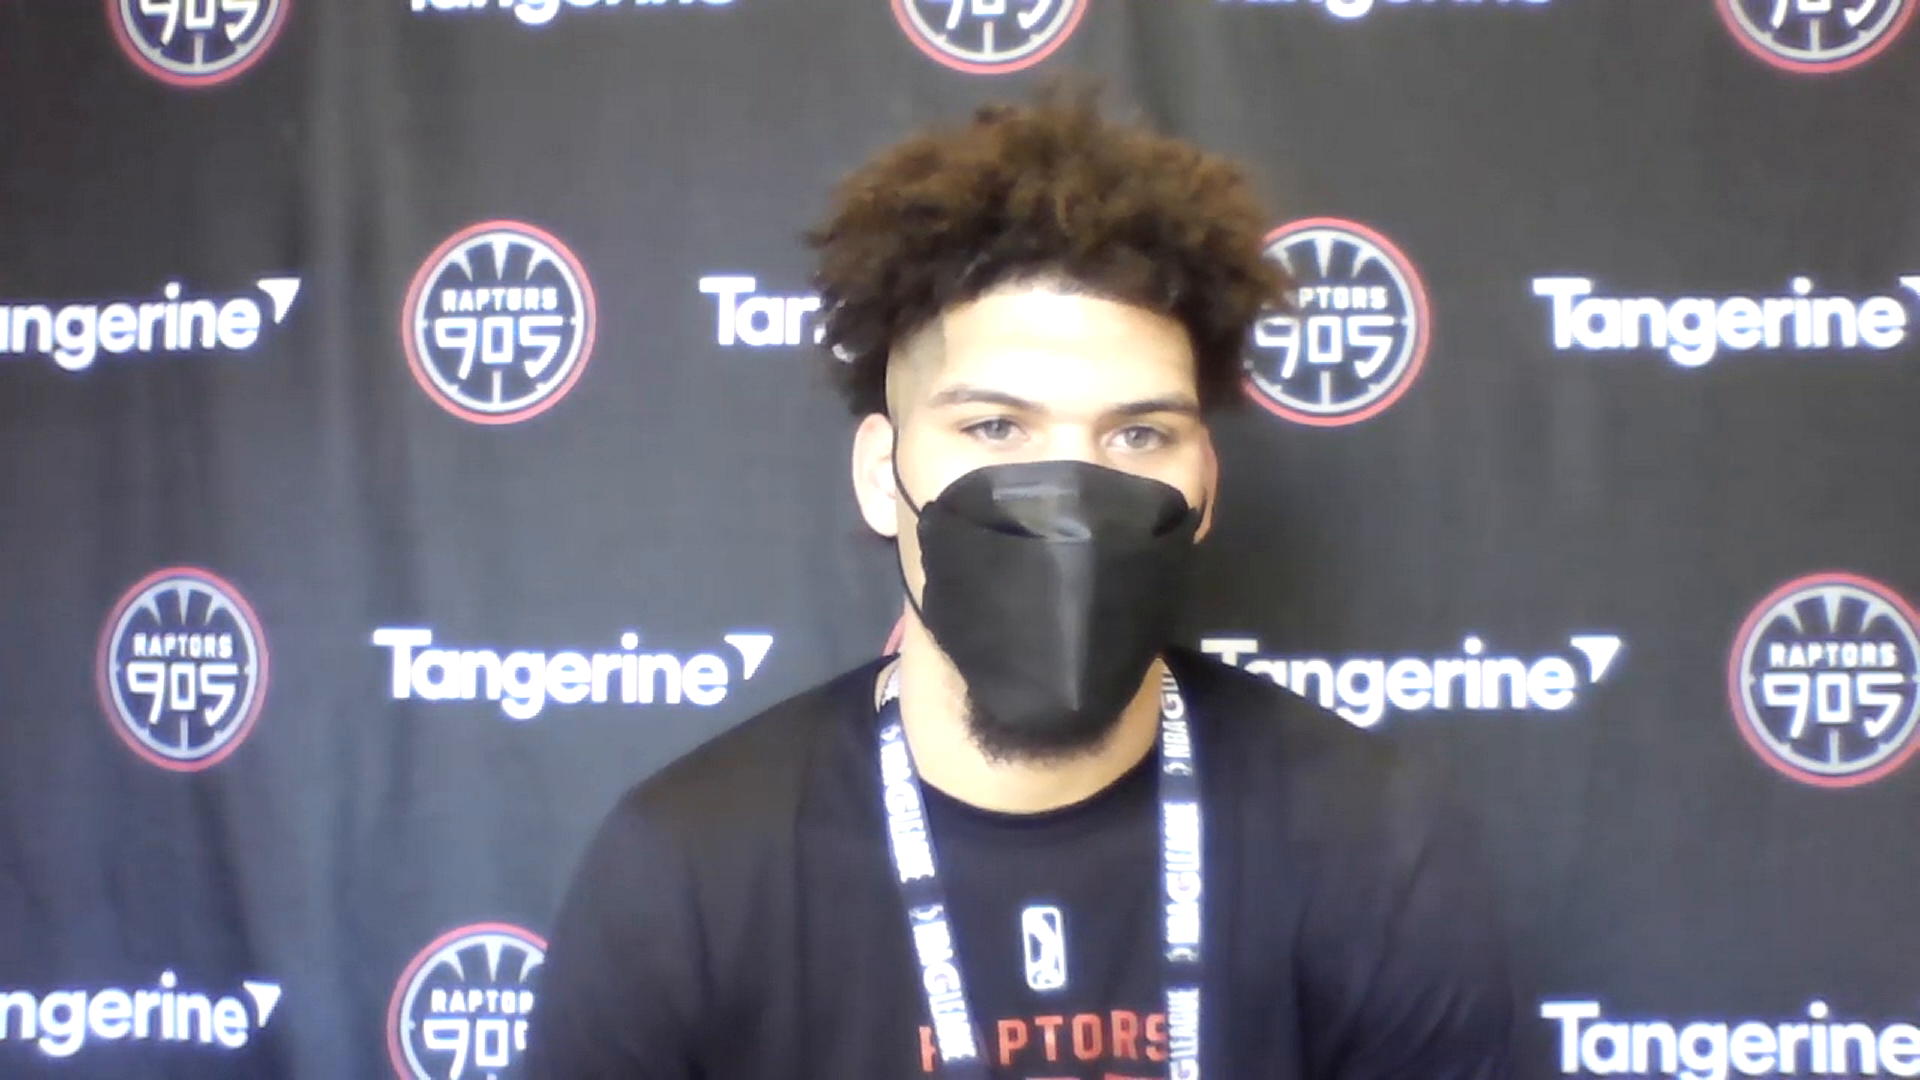 Raptors 905 Pre Game: Jarron Cumberland - February 26, 2021